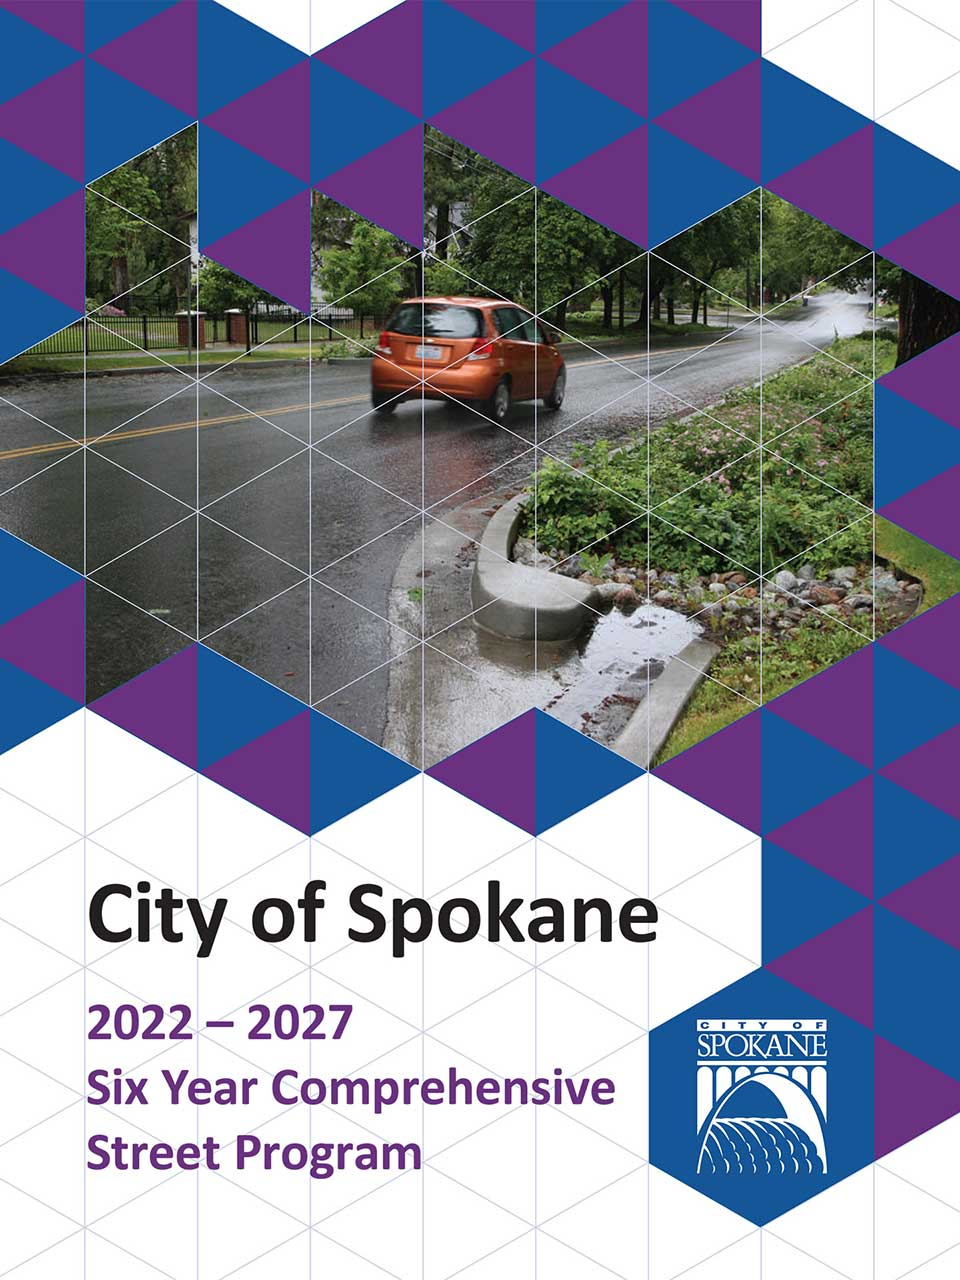 2022-2027 Six Year Comprehensive Street Program Coverpage